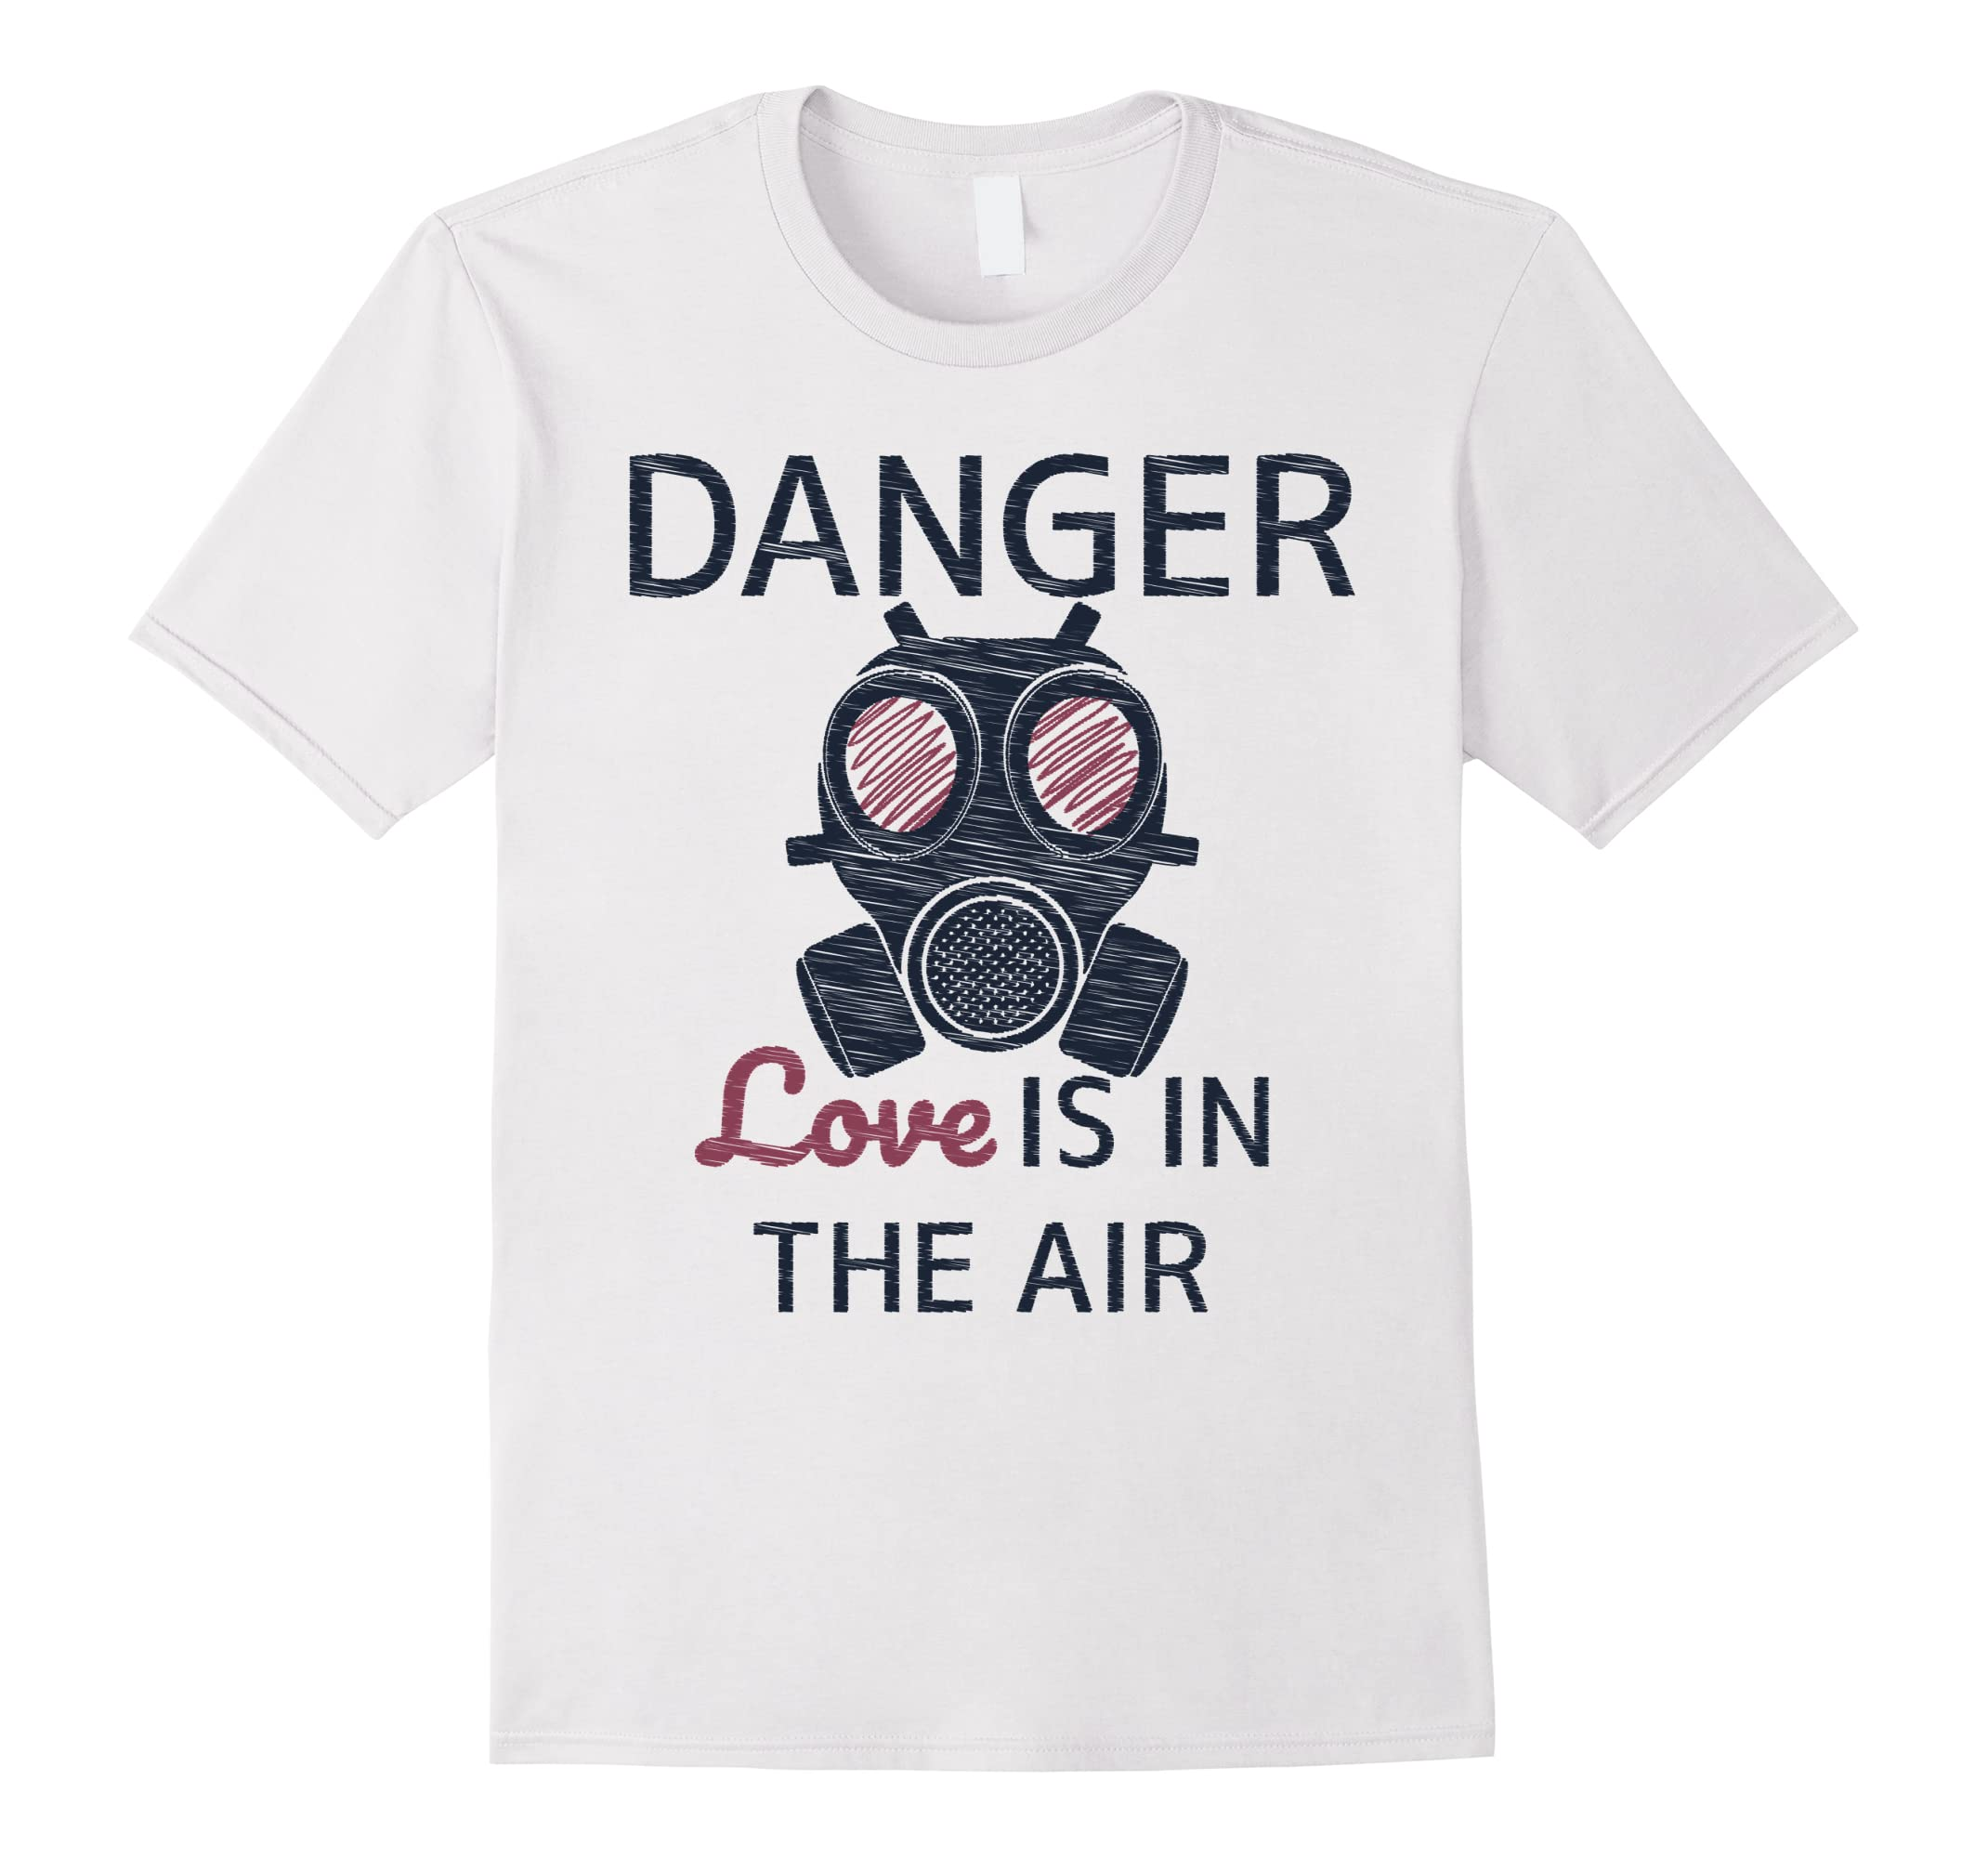 Danger Love Is In The Air Funny Anti Valentine S Day T Shirt Ah My